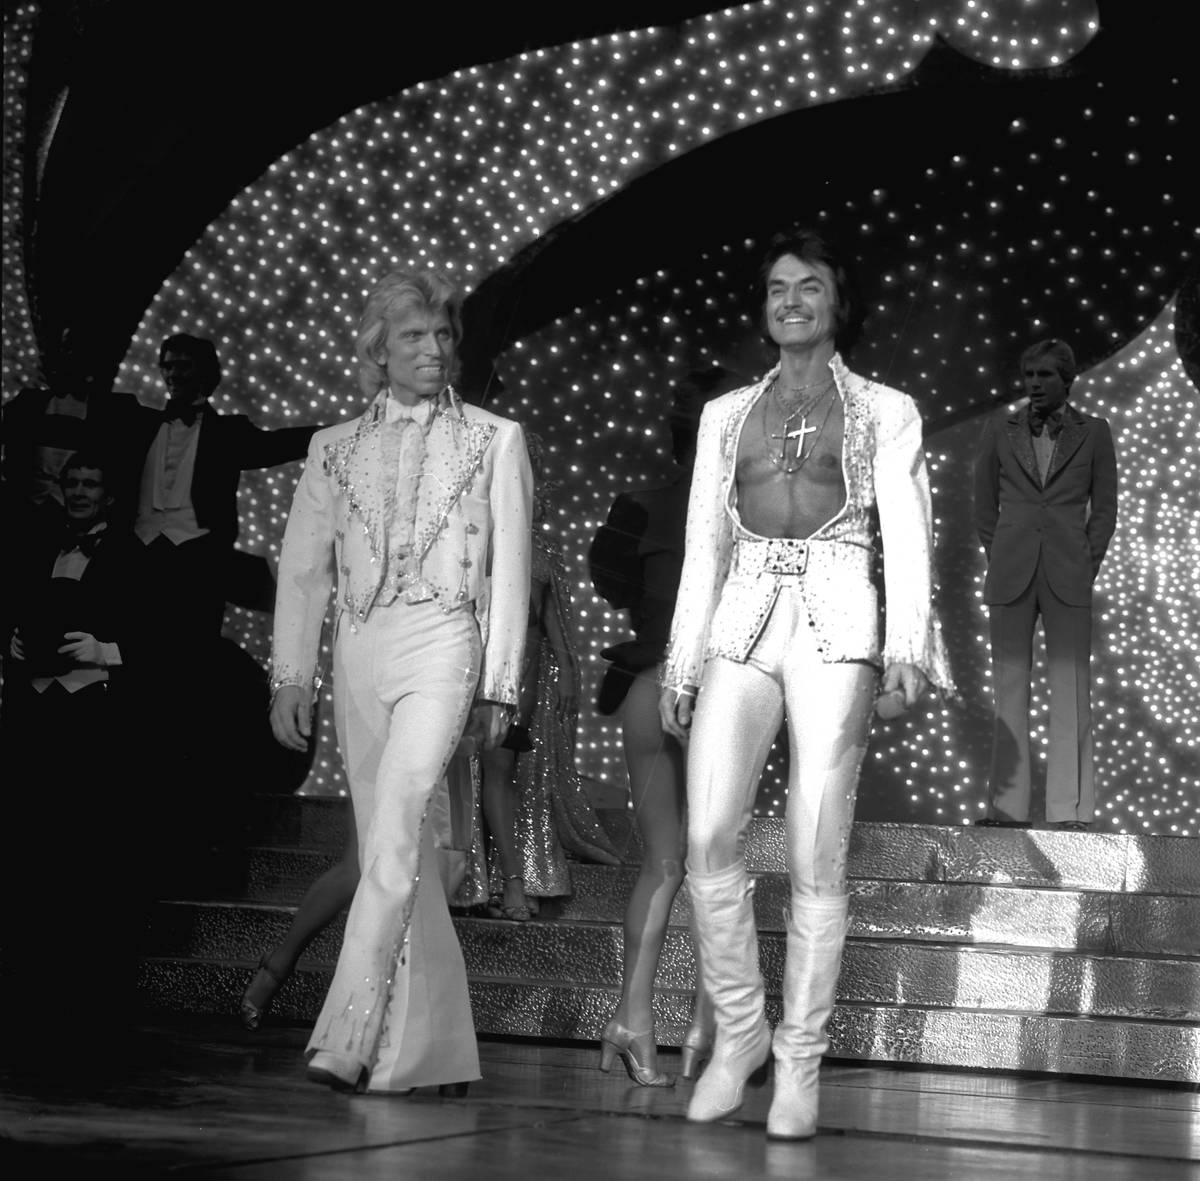 Siegfried and Roy take the stage during their magic show Siegfried & Roy at the Stardust Ho ...